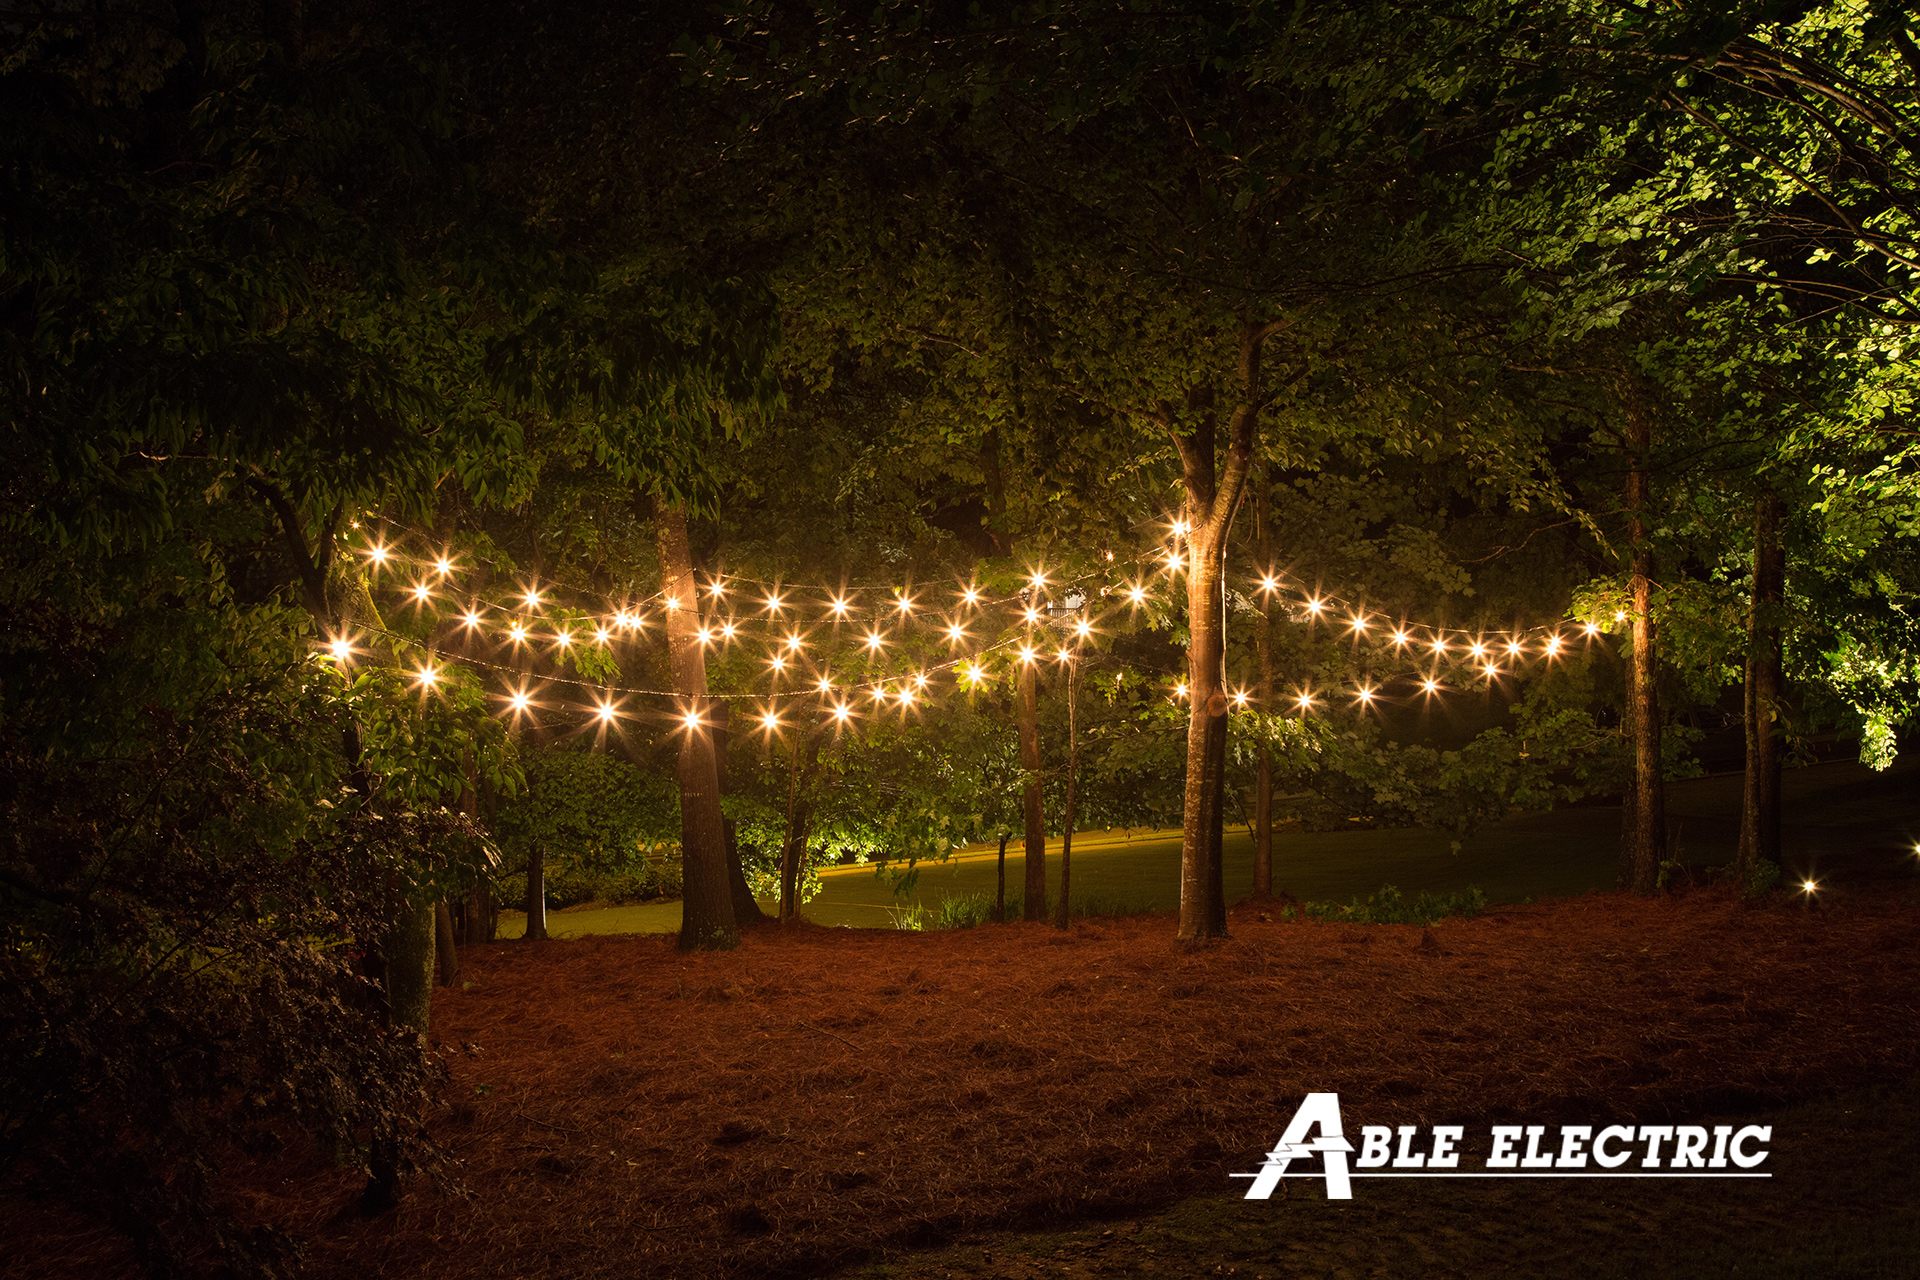 Led String Lighting Outdoor Outdoor String Lights Can Add Beauty - Able Electric